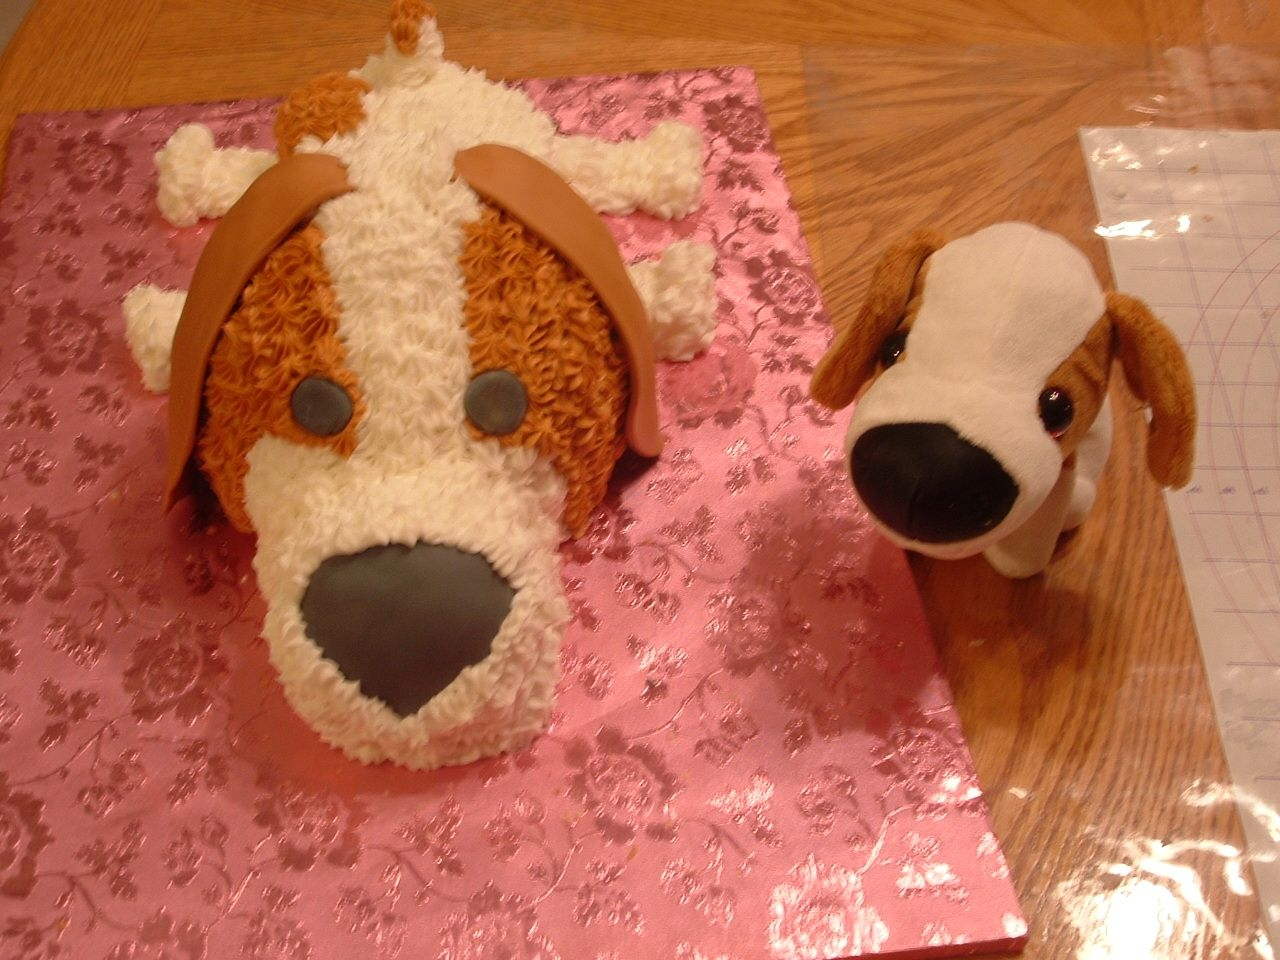 Puppy Love My friend asked me to make a cake that match her daughter's favorite toy